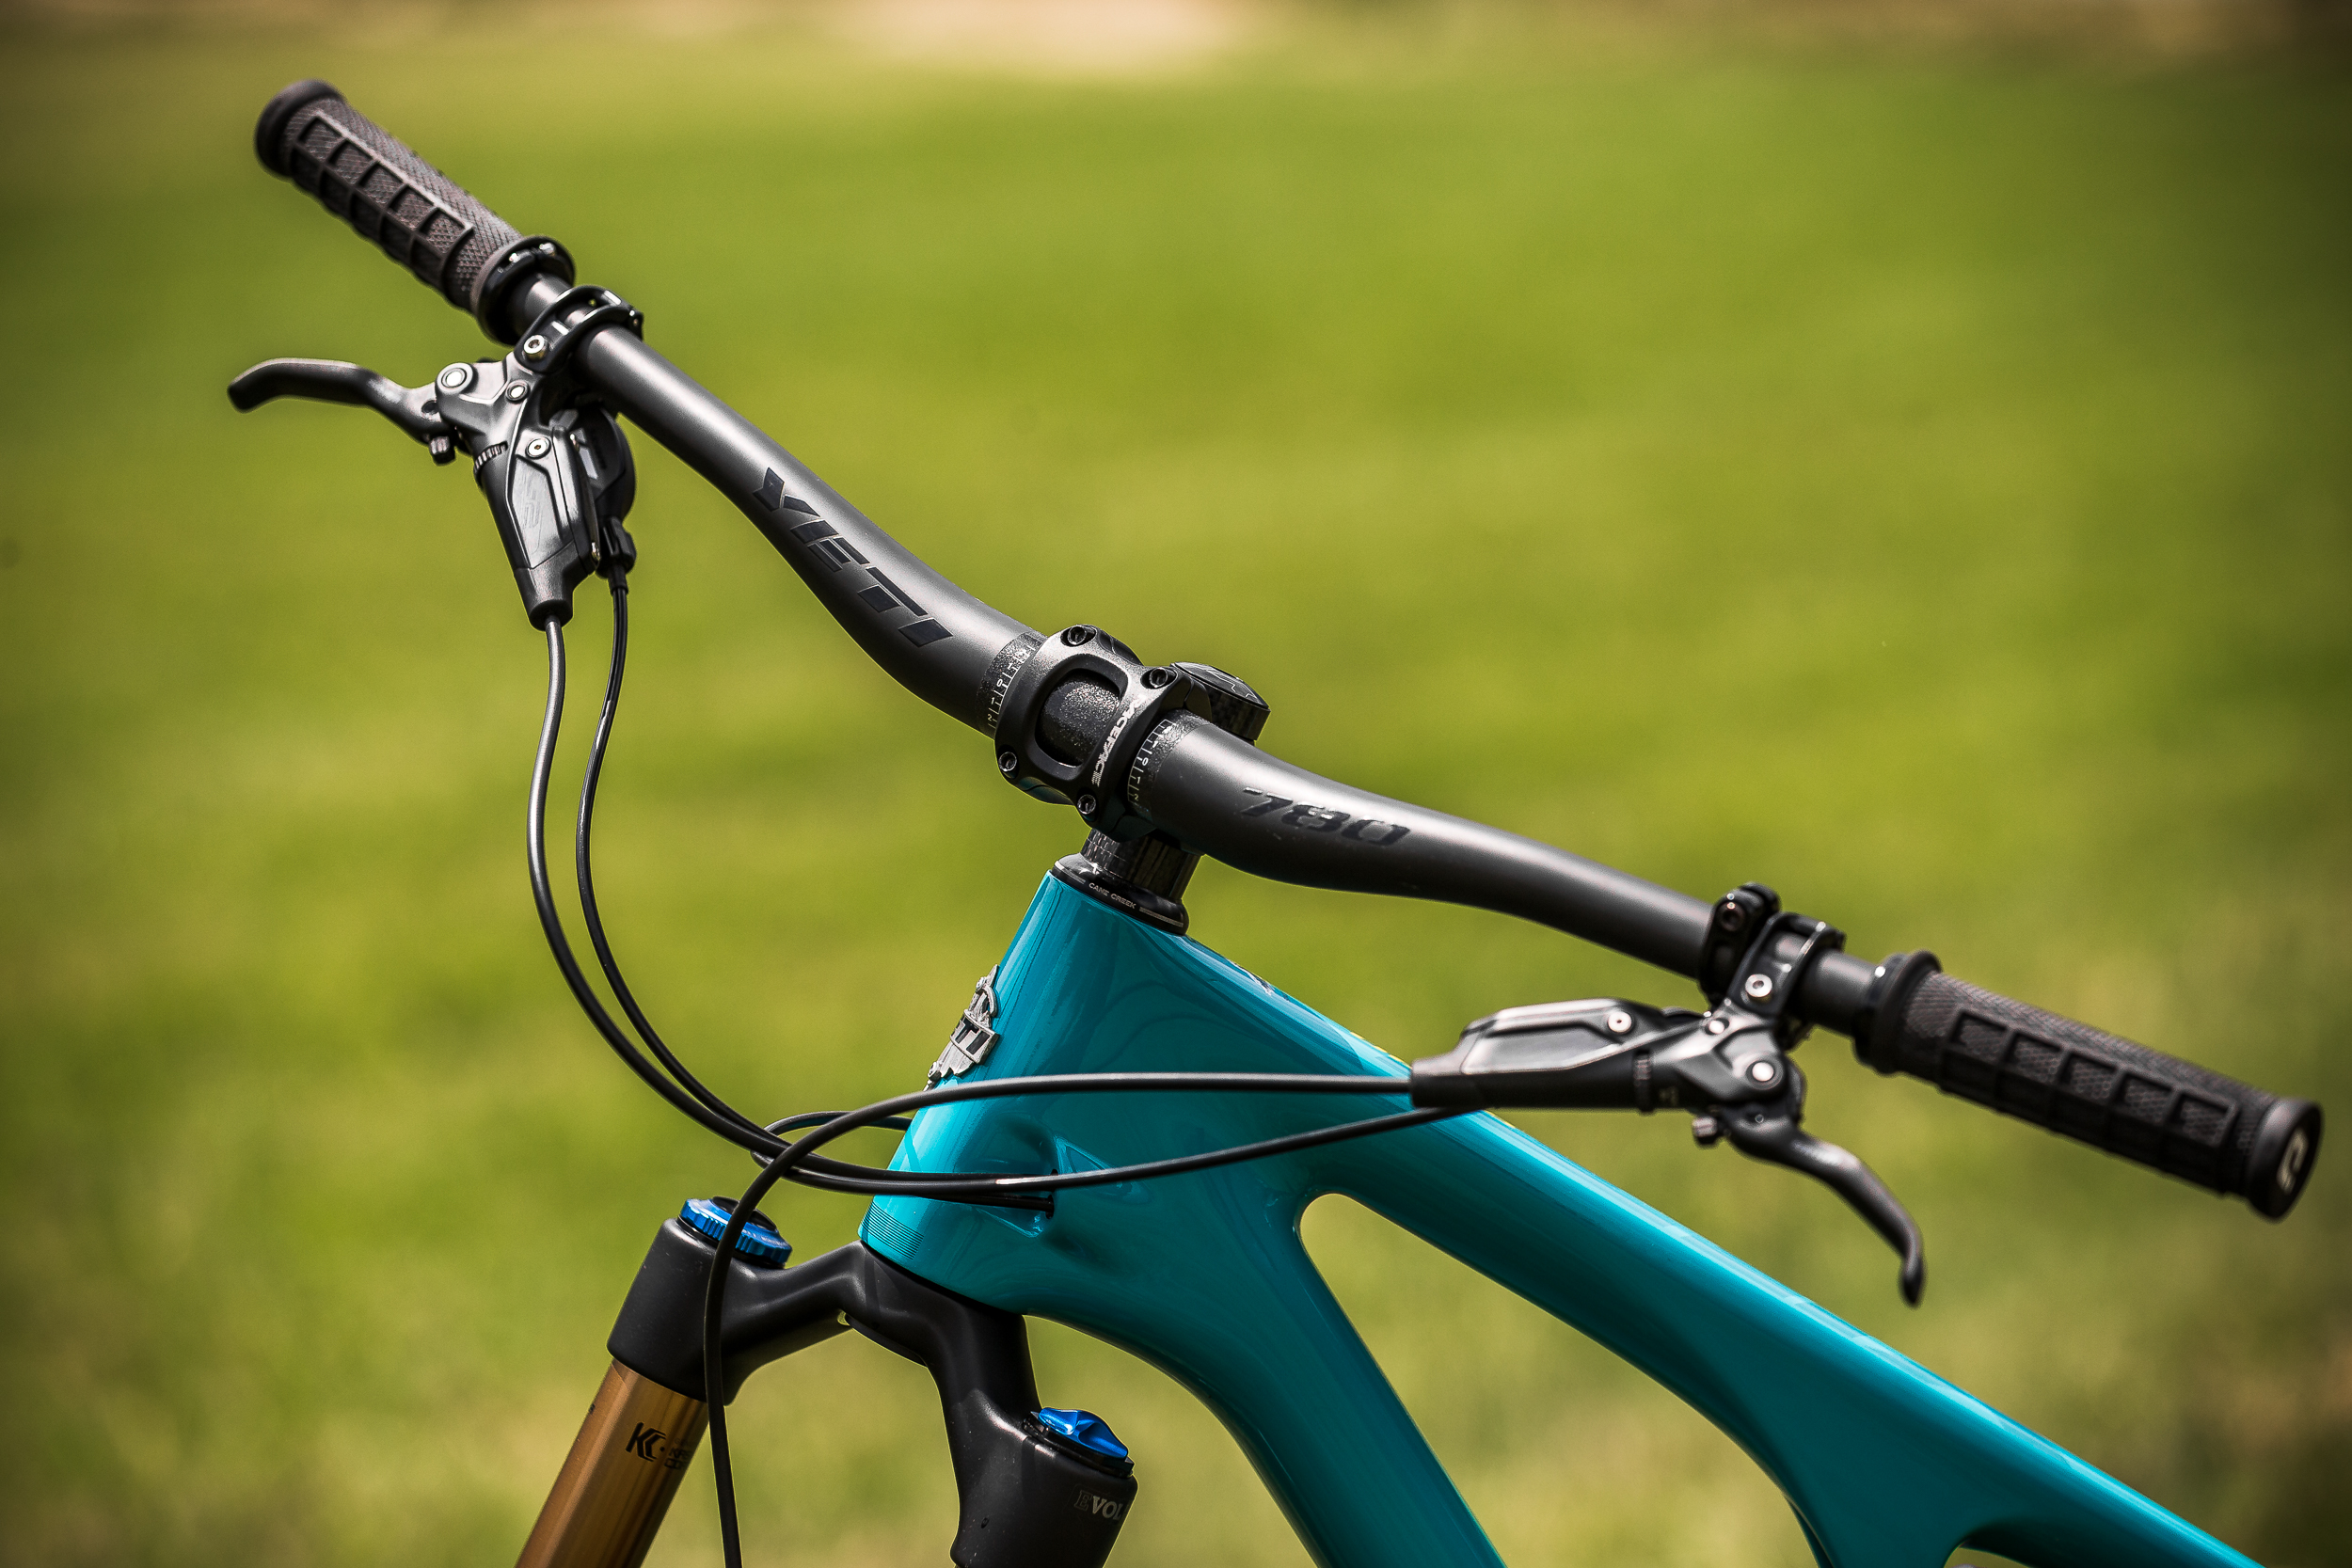 The 50mm stem and 780mm bars help keep rider weight over the front wheel, enhancing traction and control.